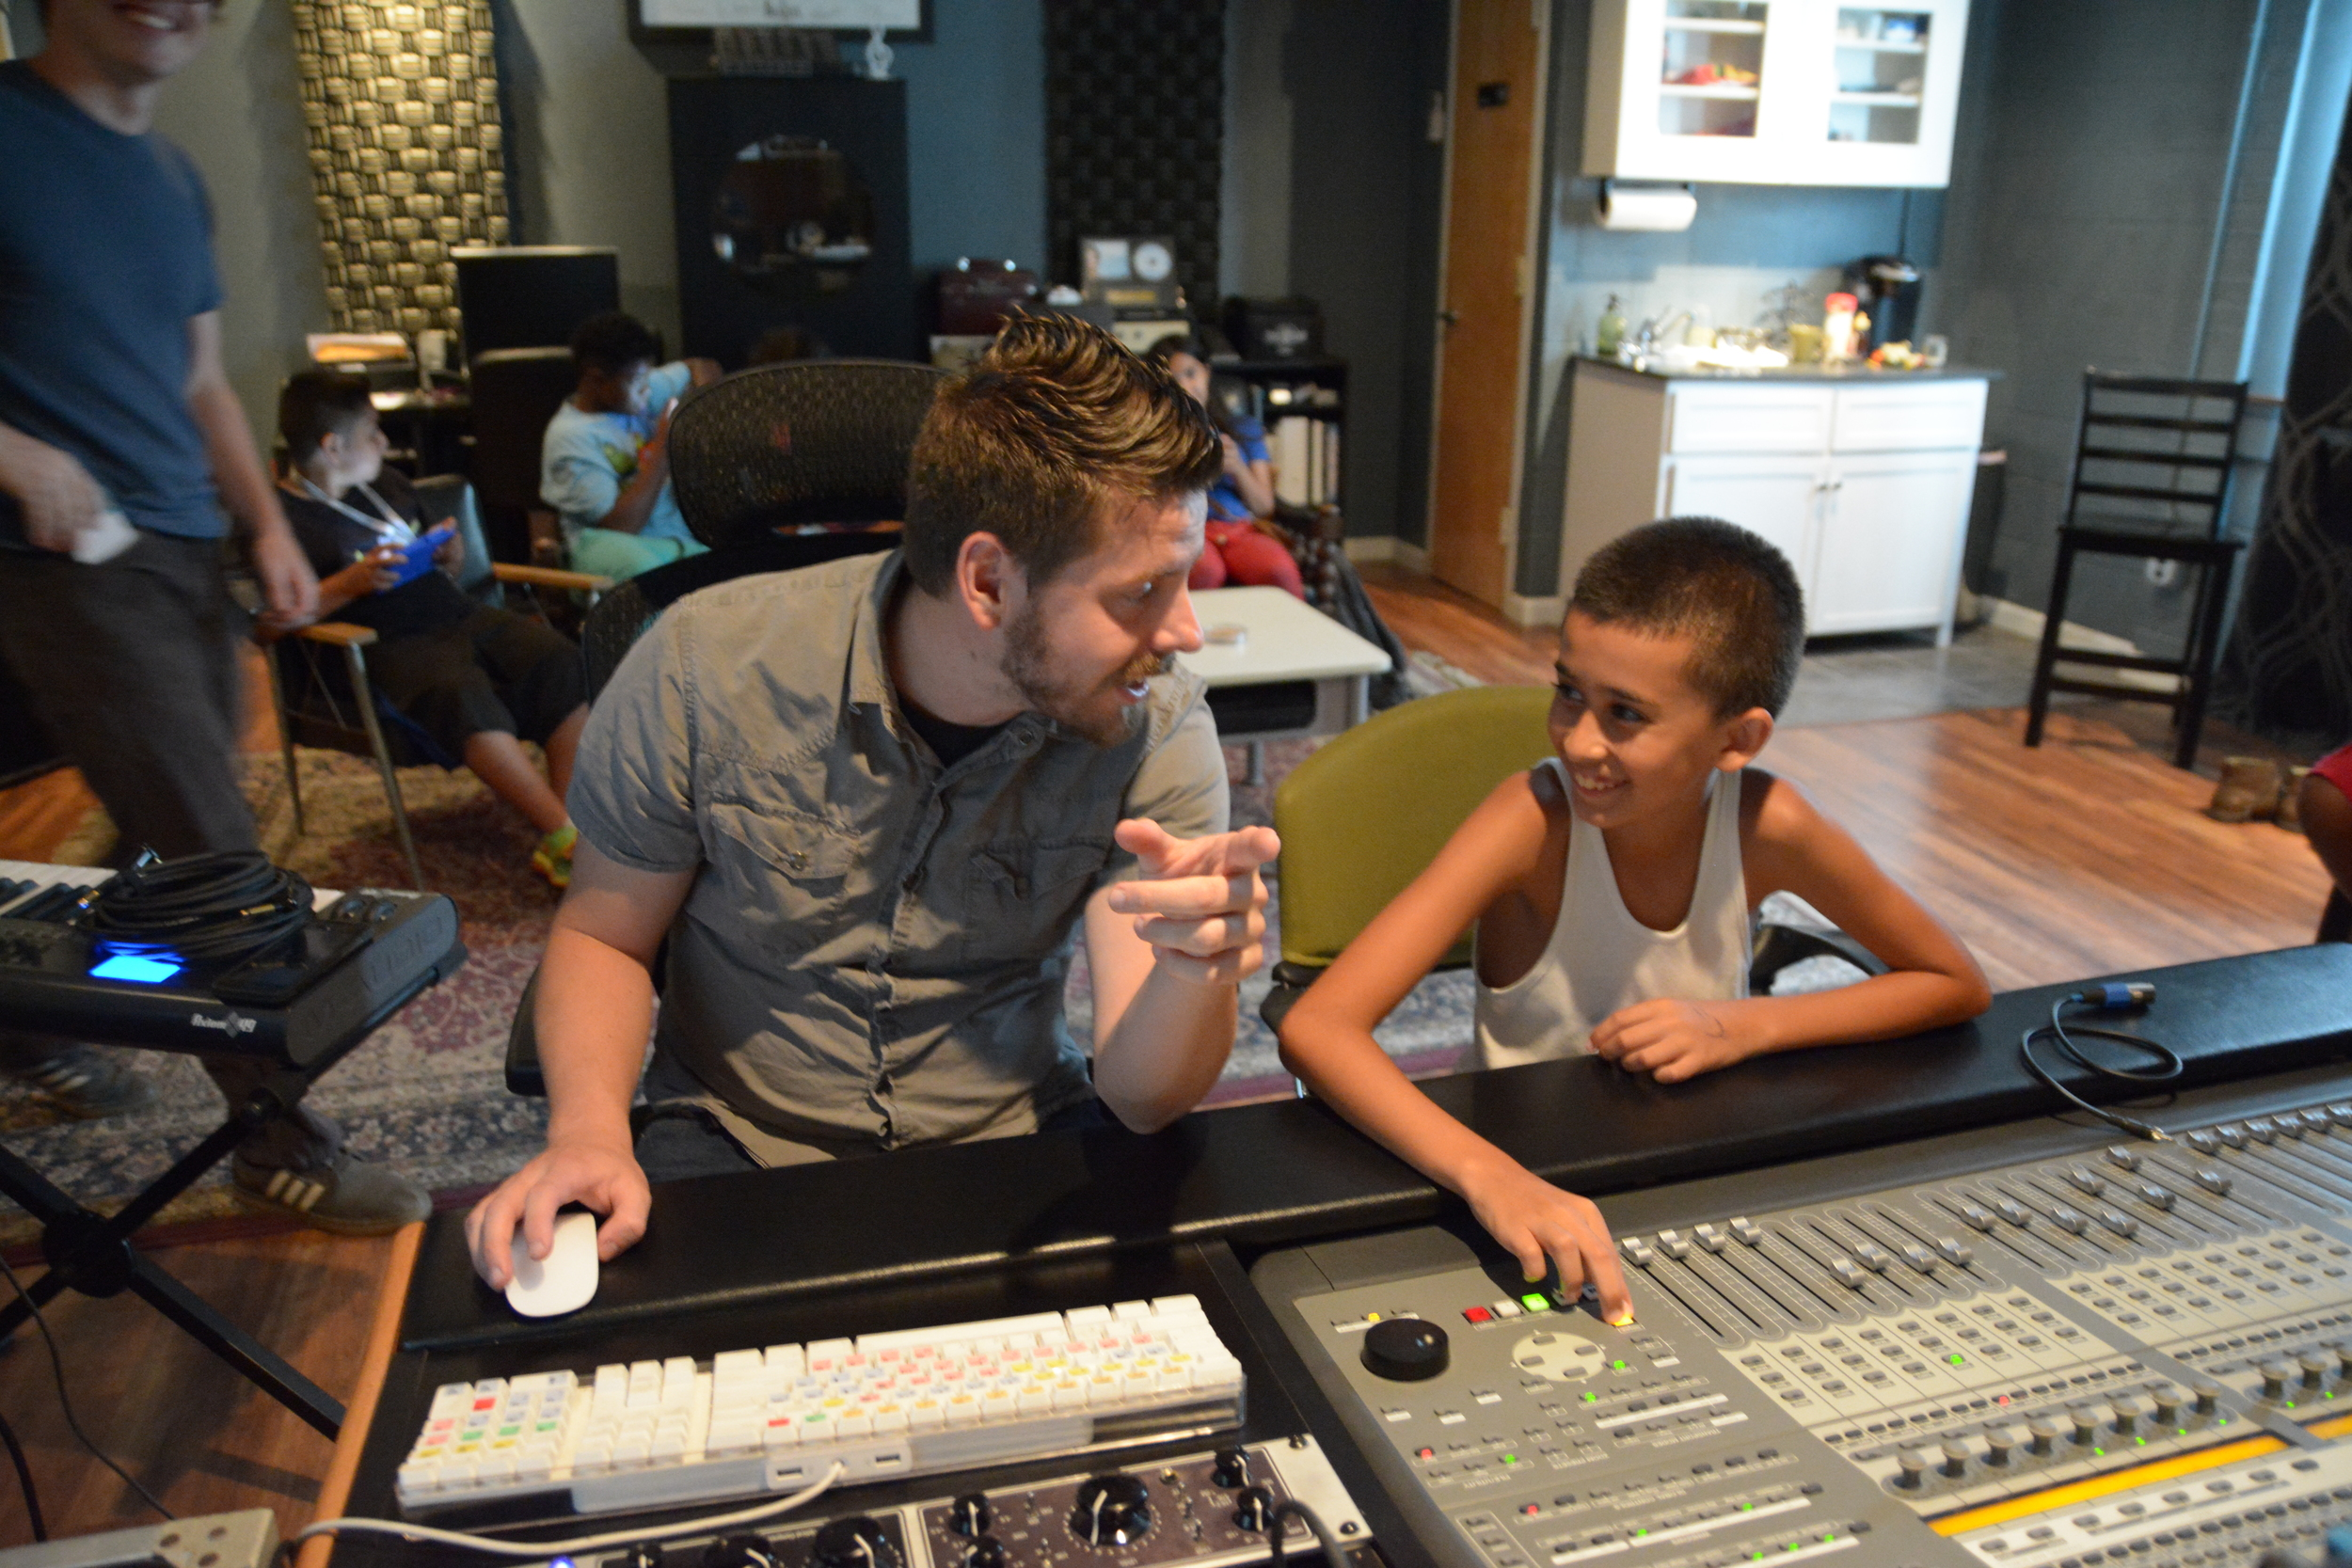 Campers got to participate in activities like Zumba and songwriting, and even got a chance to visit a music studio, where they recorded a song together!